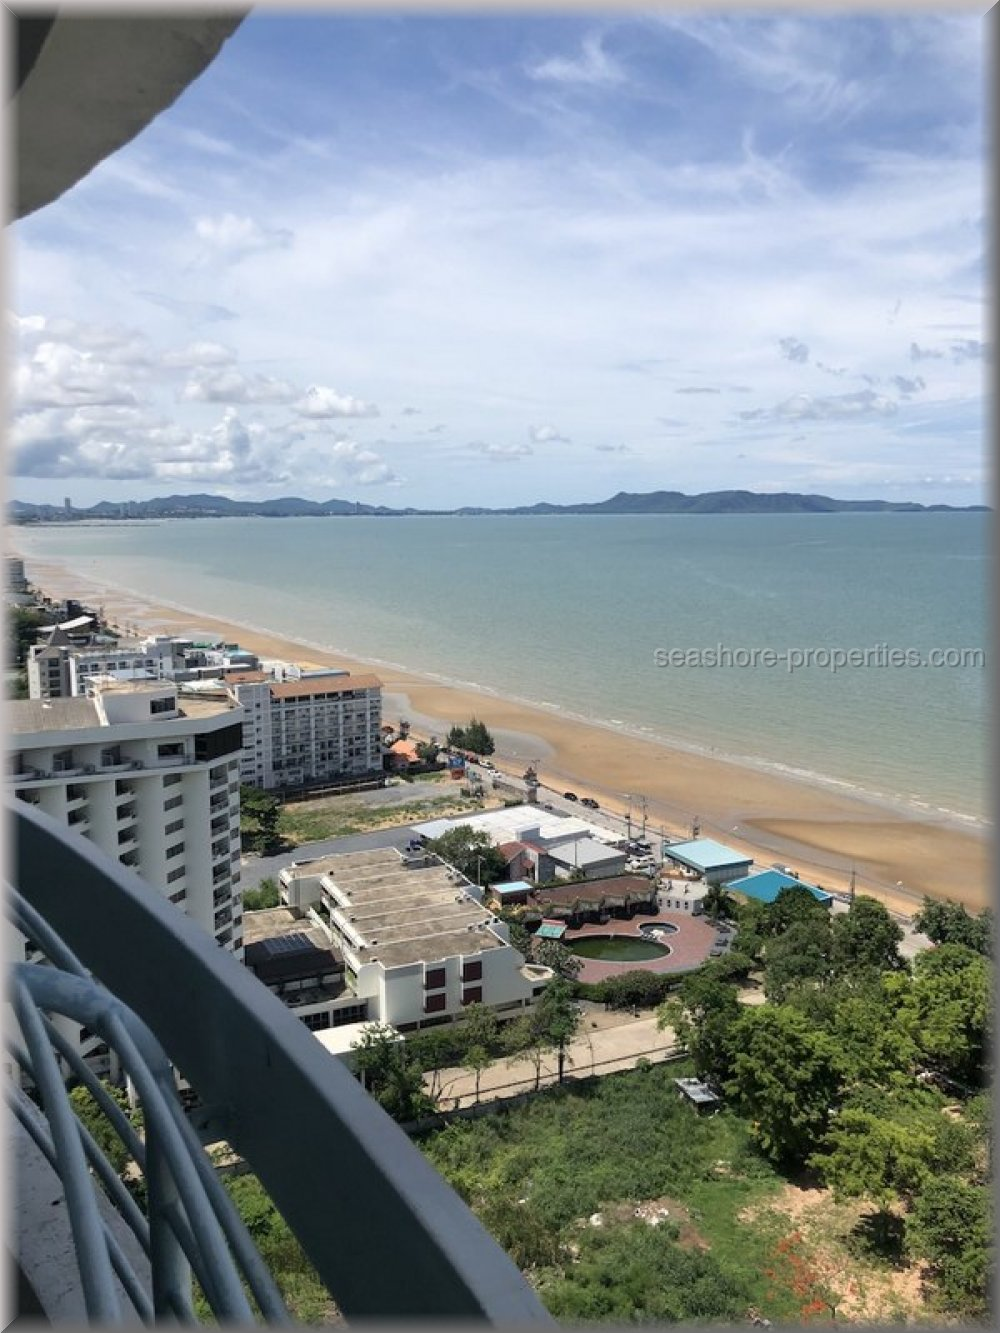 pic-7-Seashore Properties (Thailand) Co. Ltd. metro jomtein condotel   for sale in Jomtien Pattaya